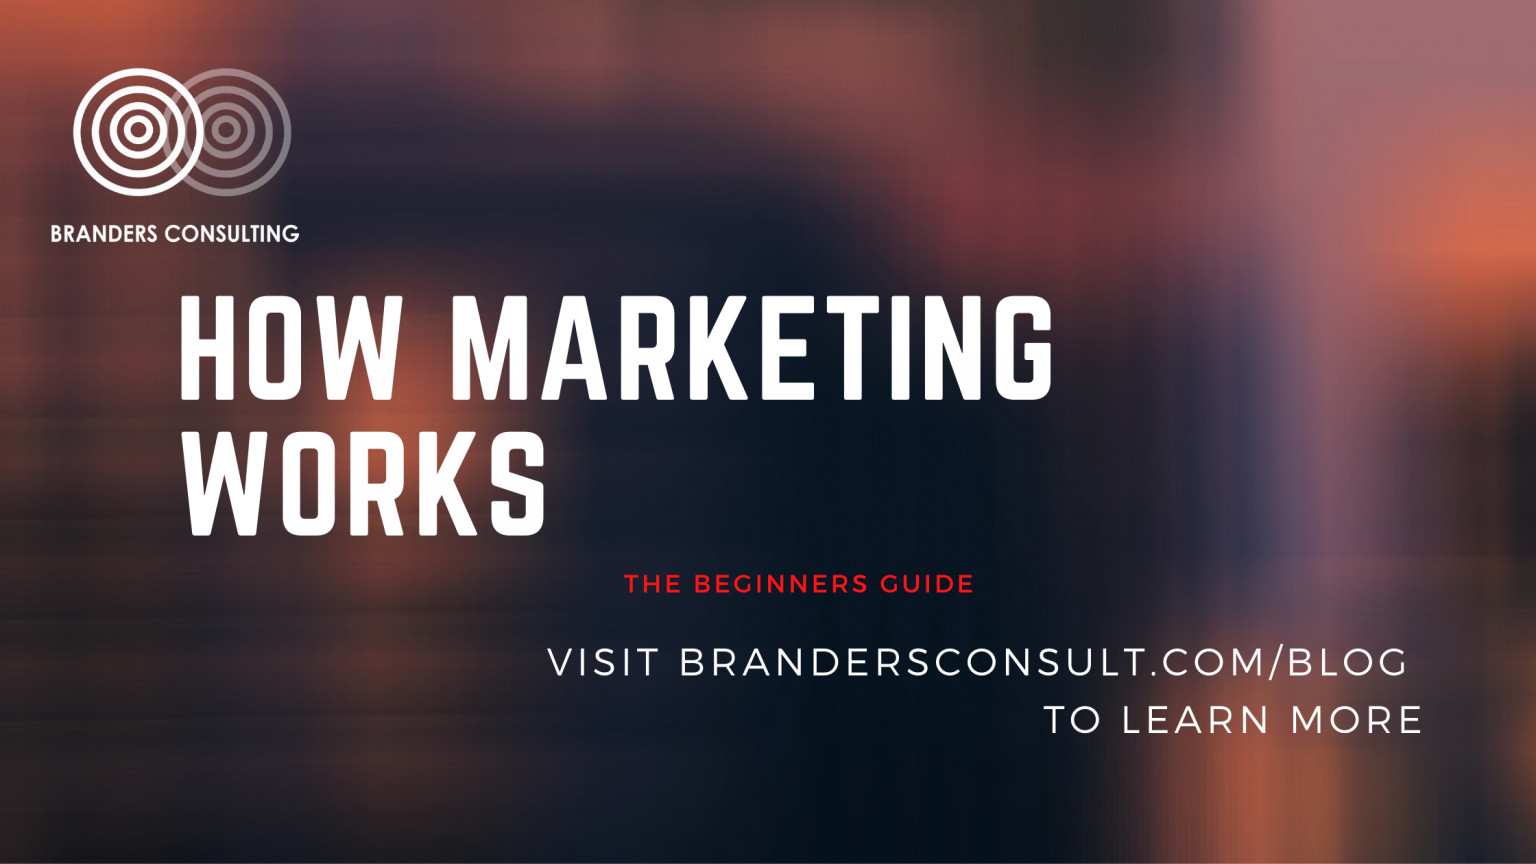 HOW MARKETING WORKS The Beginners Guide